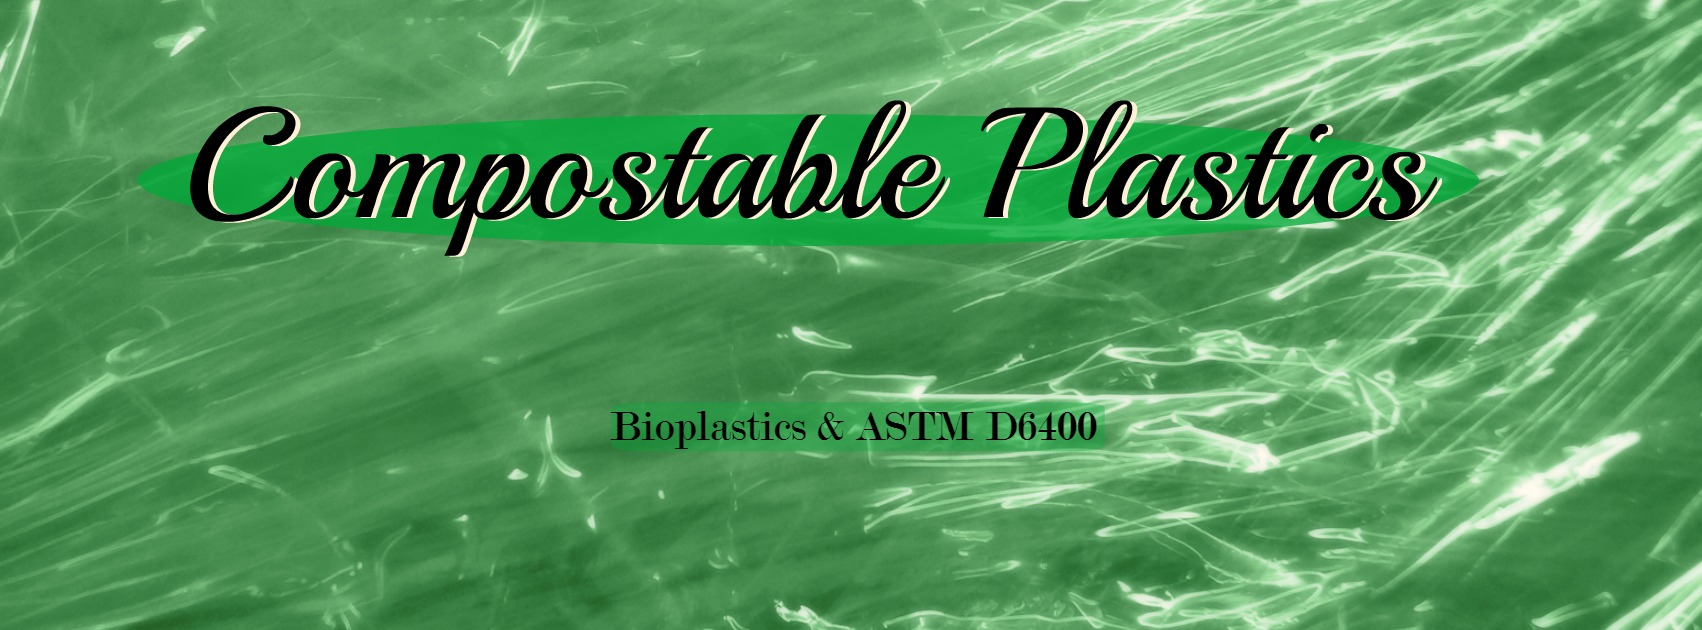 Bioplastics, Compostable plastic, and ASTM D6400 explained